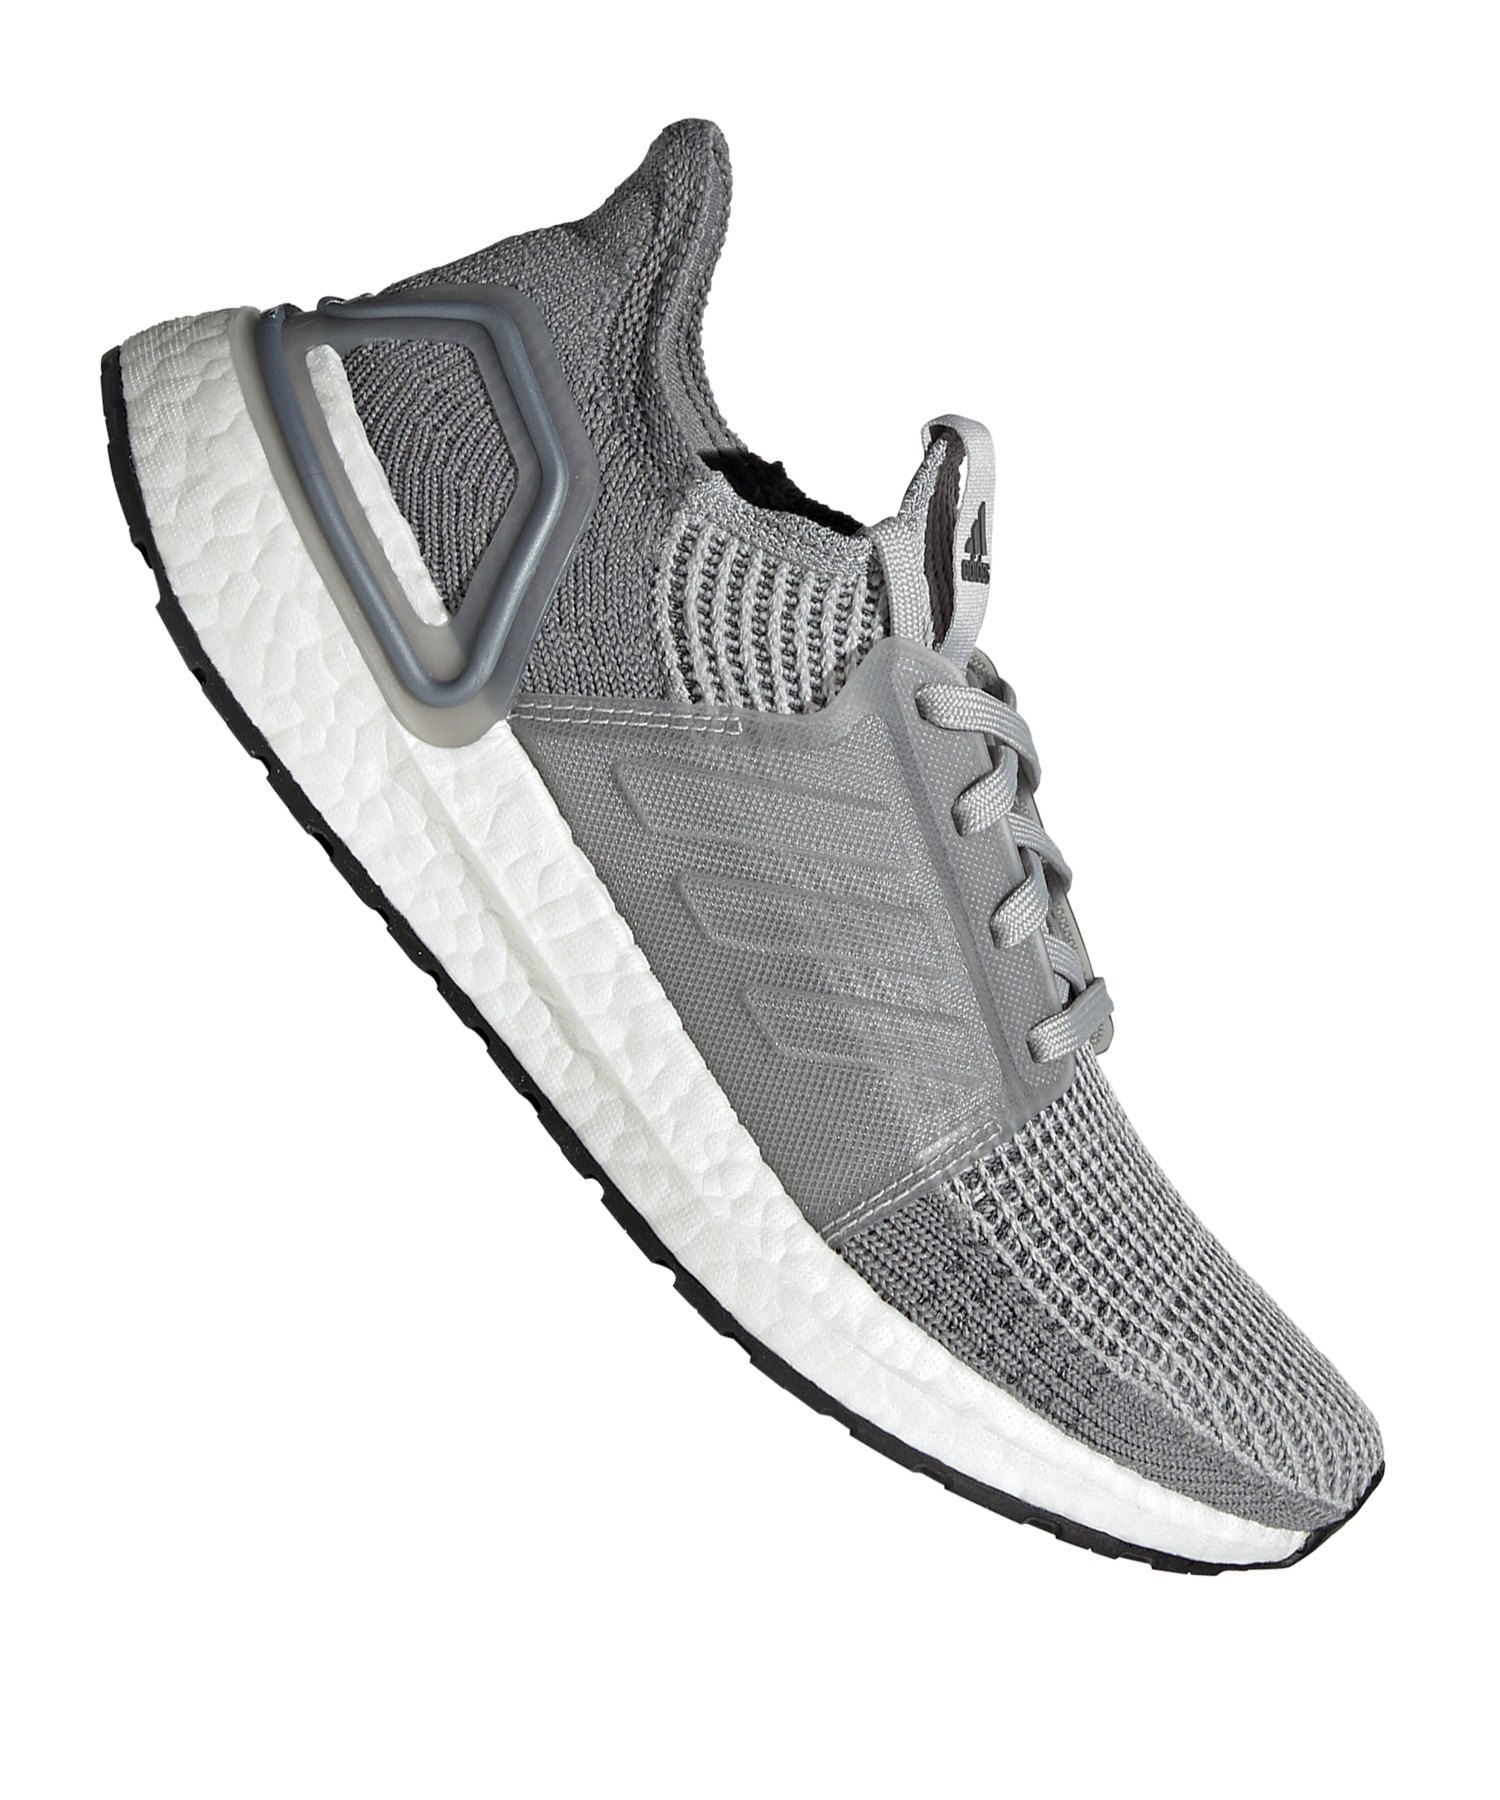 Adidas Ultraboost 19 Review | Adidas Sneakers | New adidas